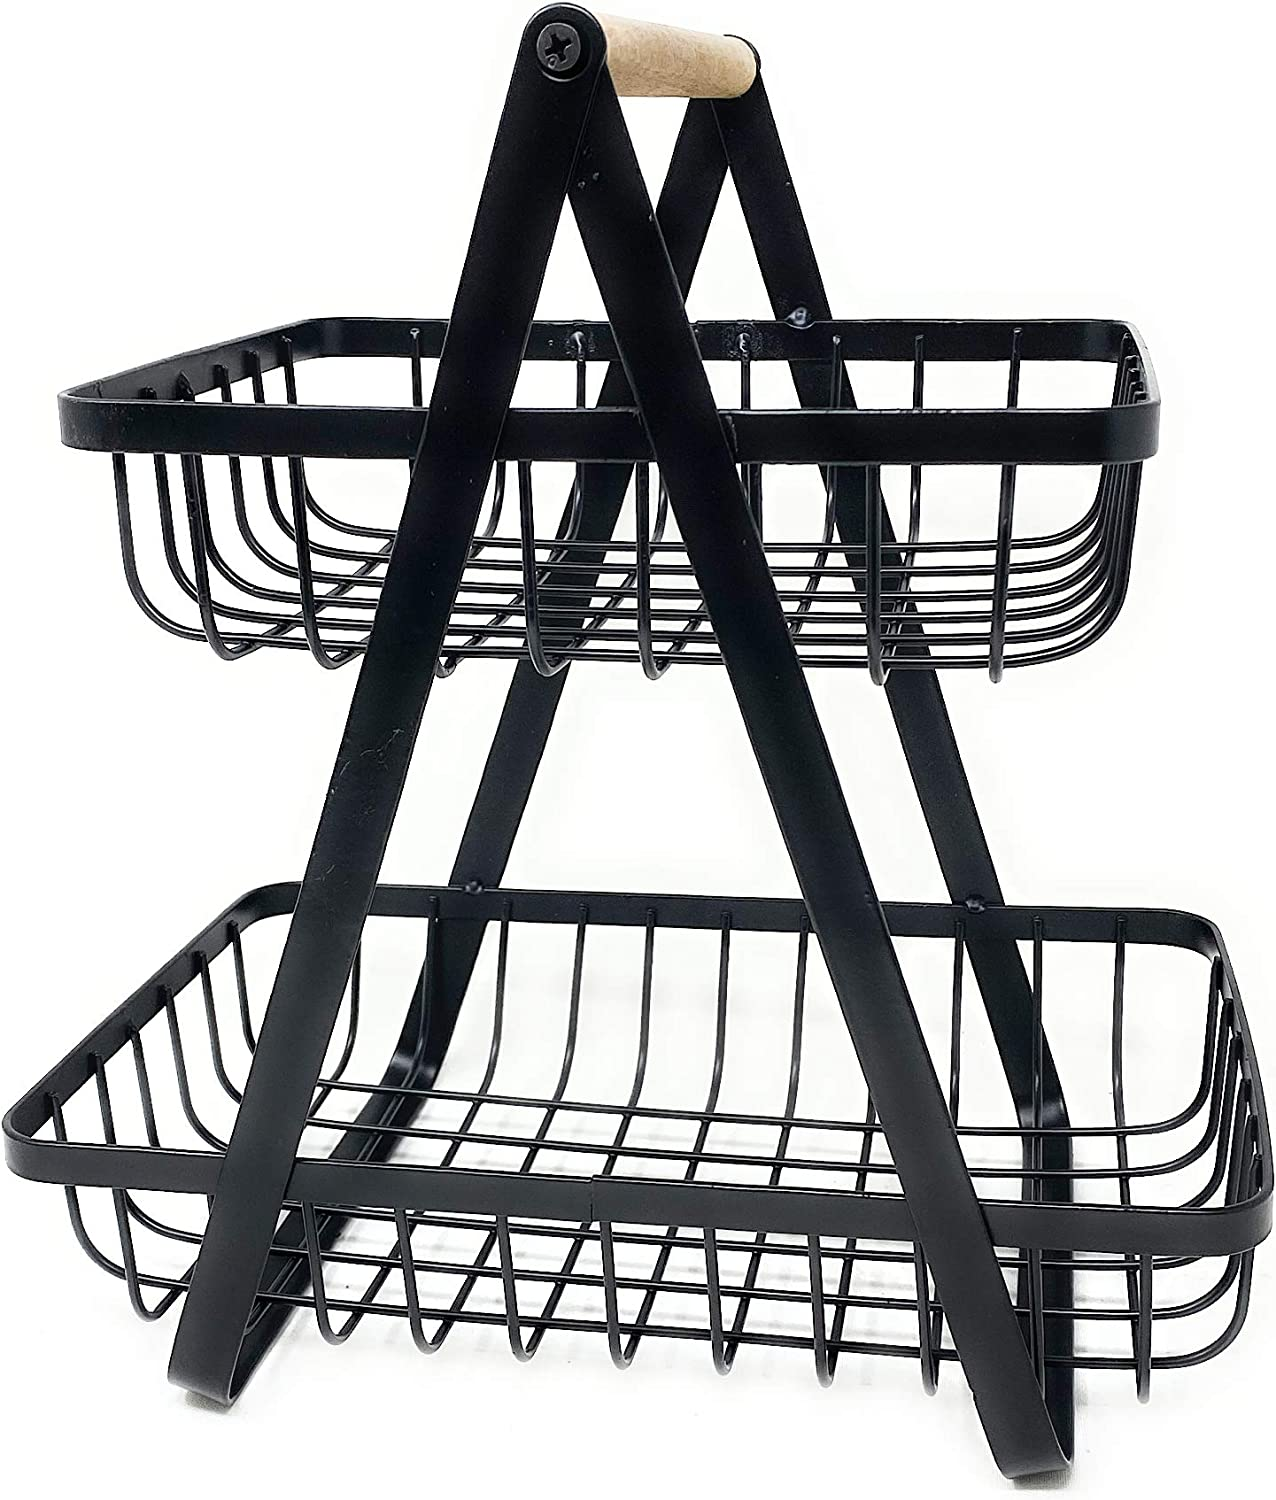 THE NIFTY NOOK Farmhouse 2-Tier Metal Fruit Storage Basket Organizer Display Stand For Home Decoration (Black)